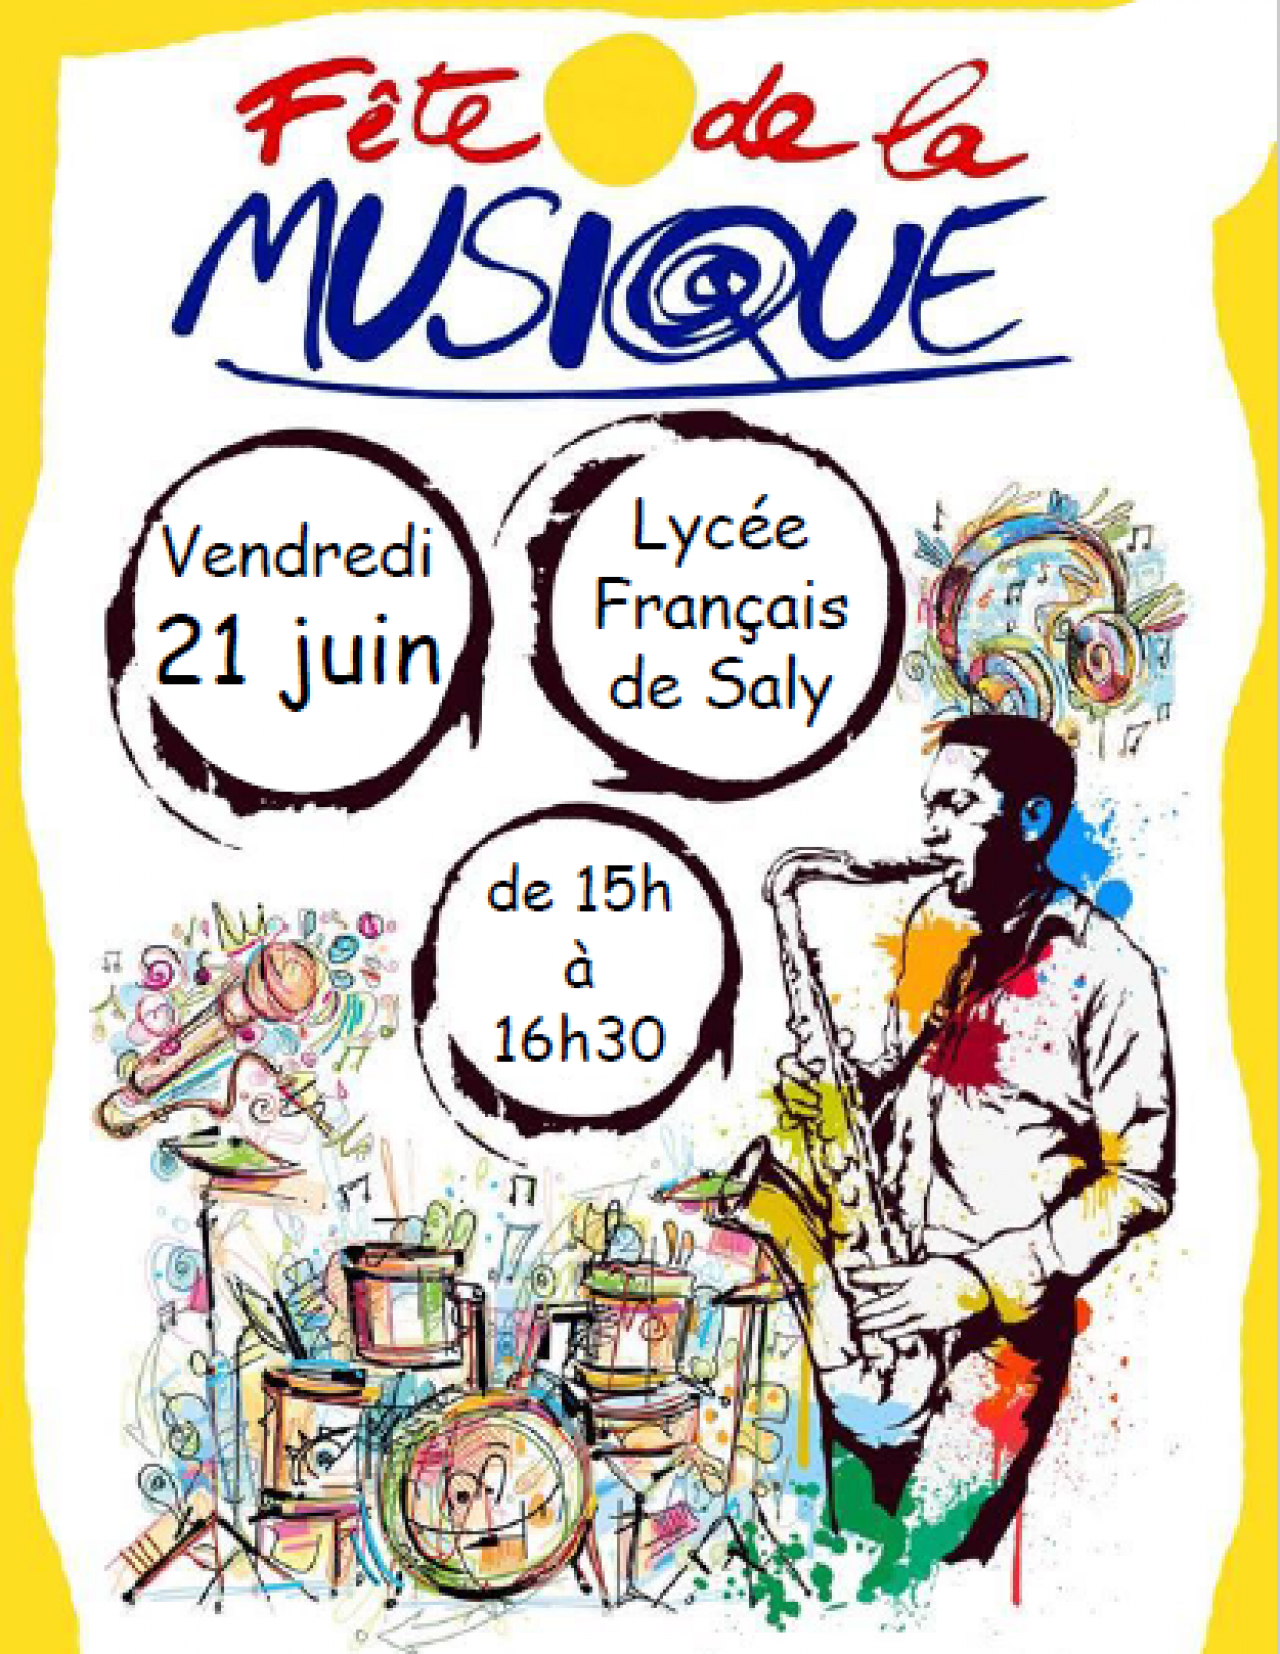 articles/June2019/fetedelamusique1.PNG